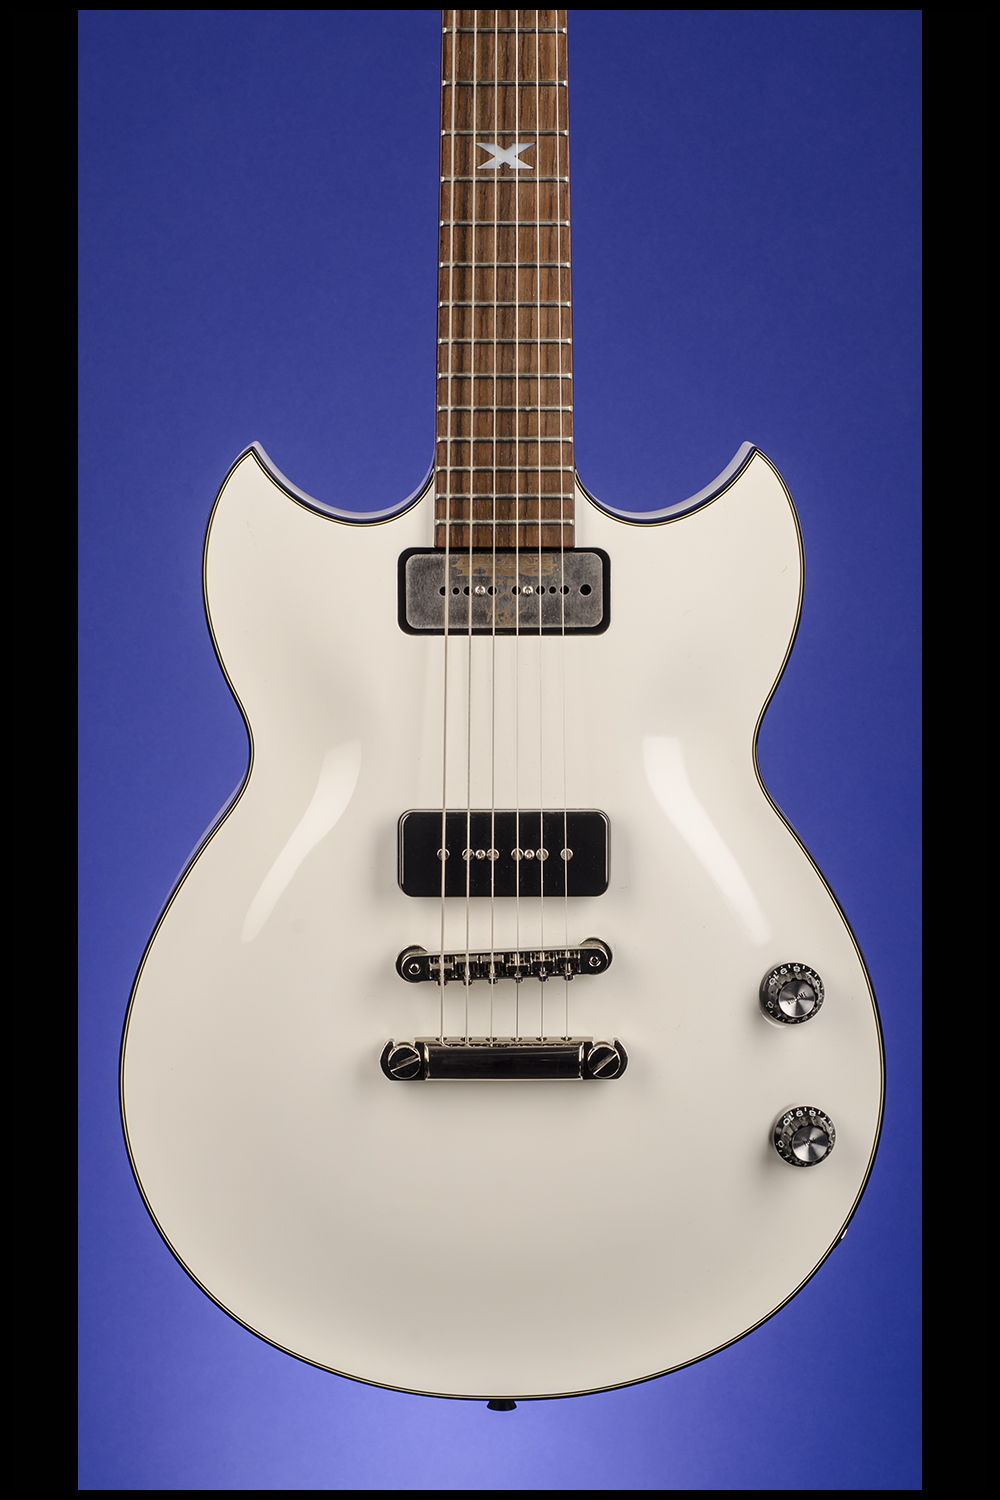 Phil x sg1801px guitars fretted americana inc for Where are yamaha guitars made